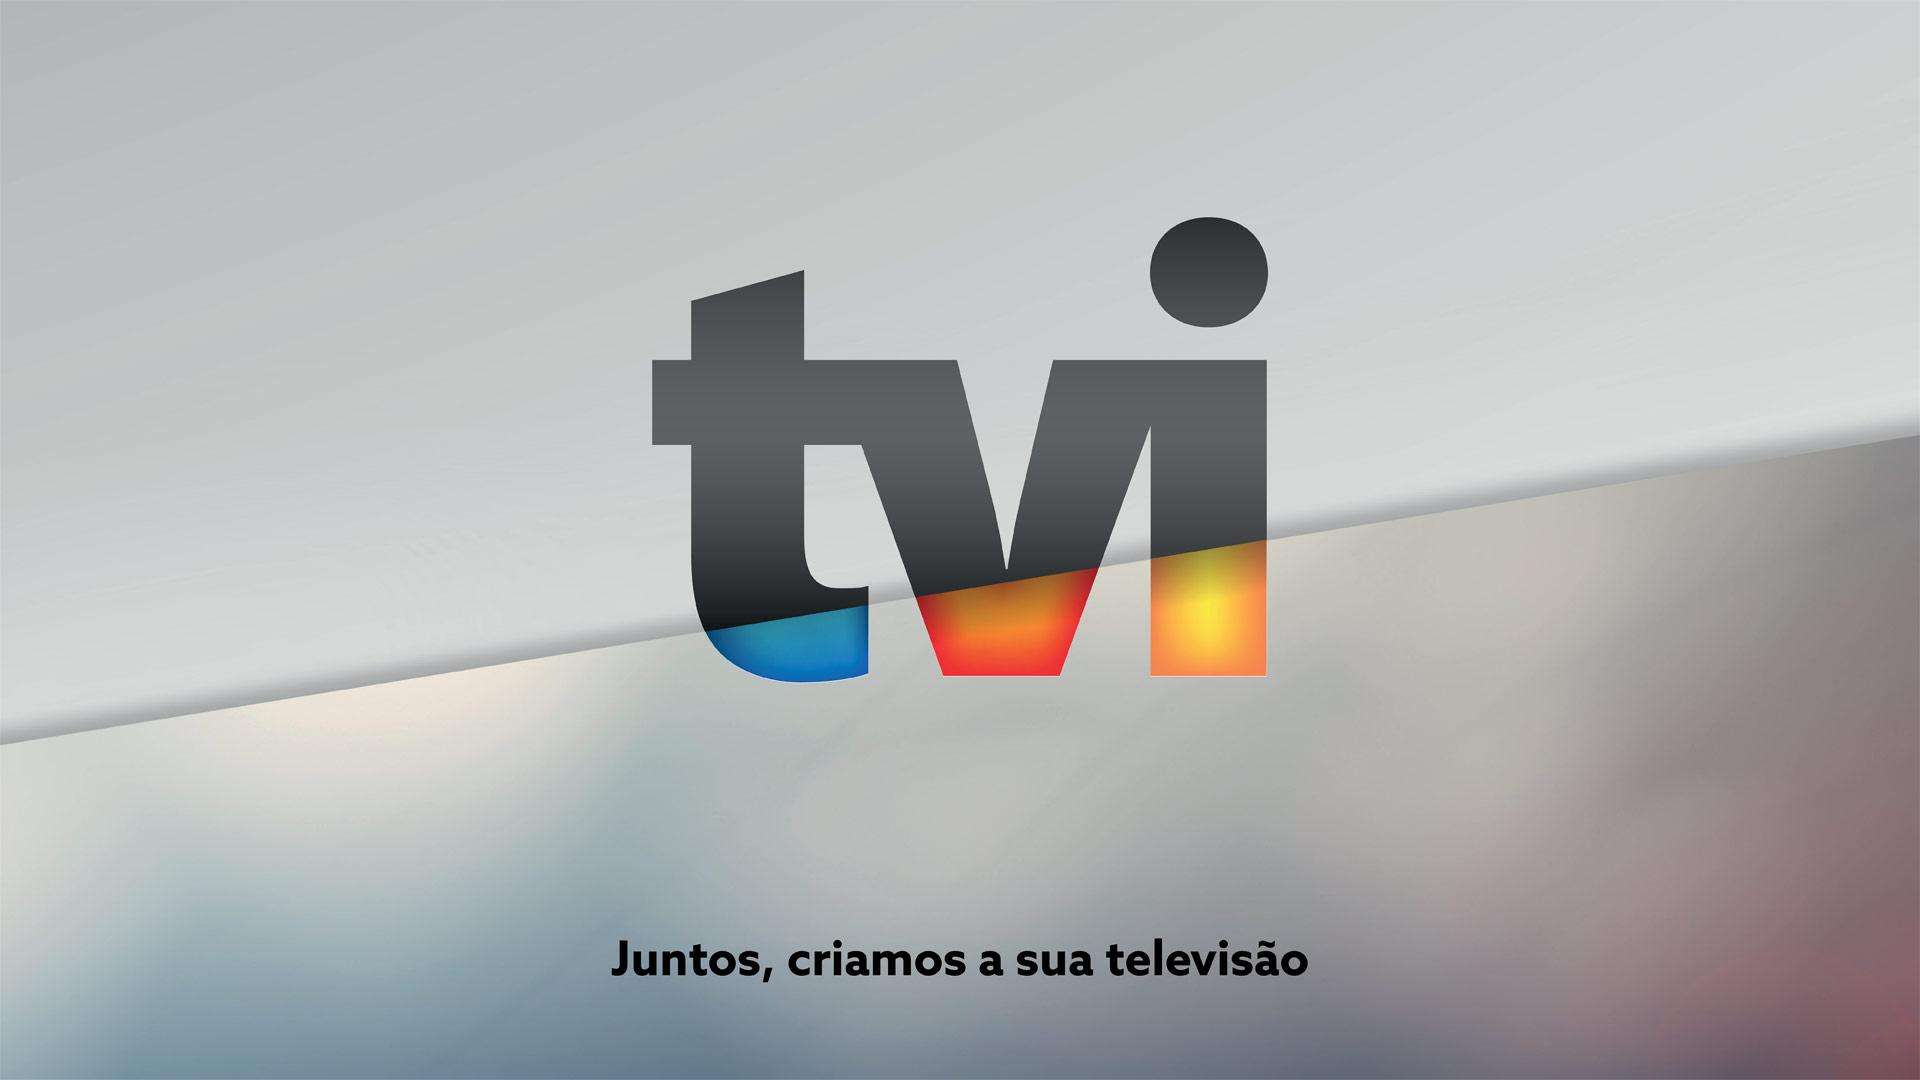 TVI lidera no prime-time nos primeiros 4 meses do ano